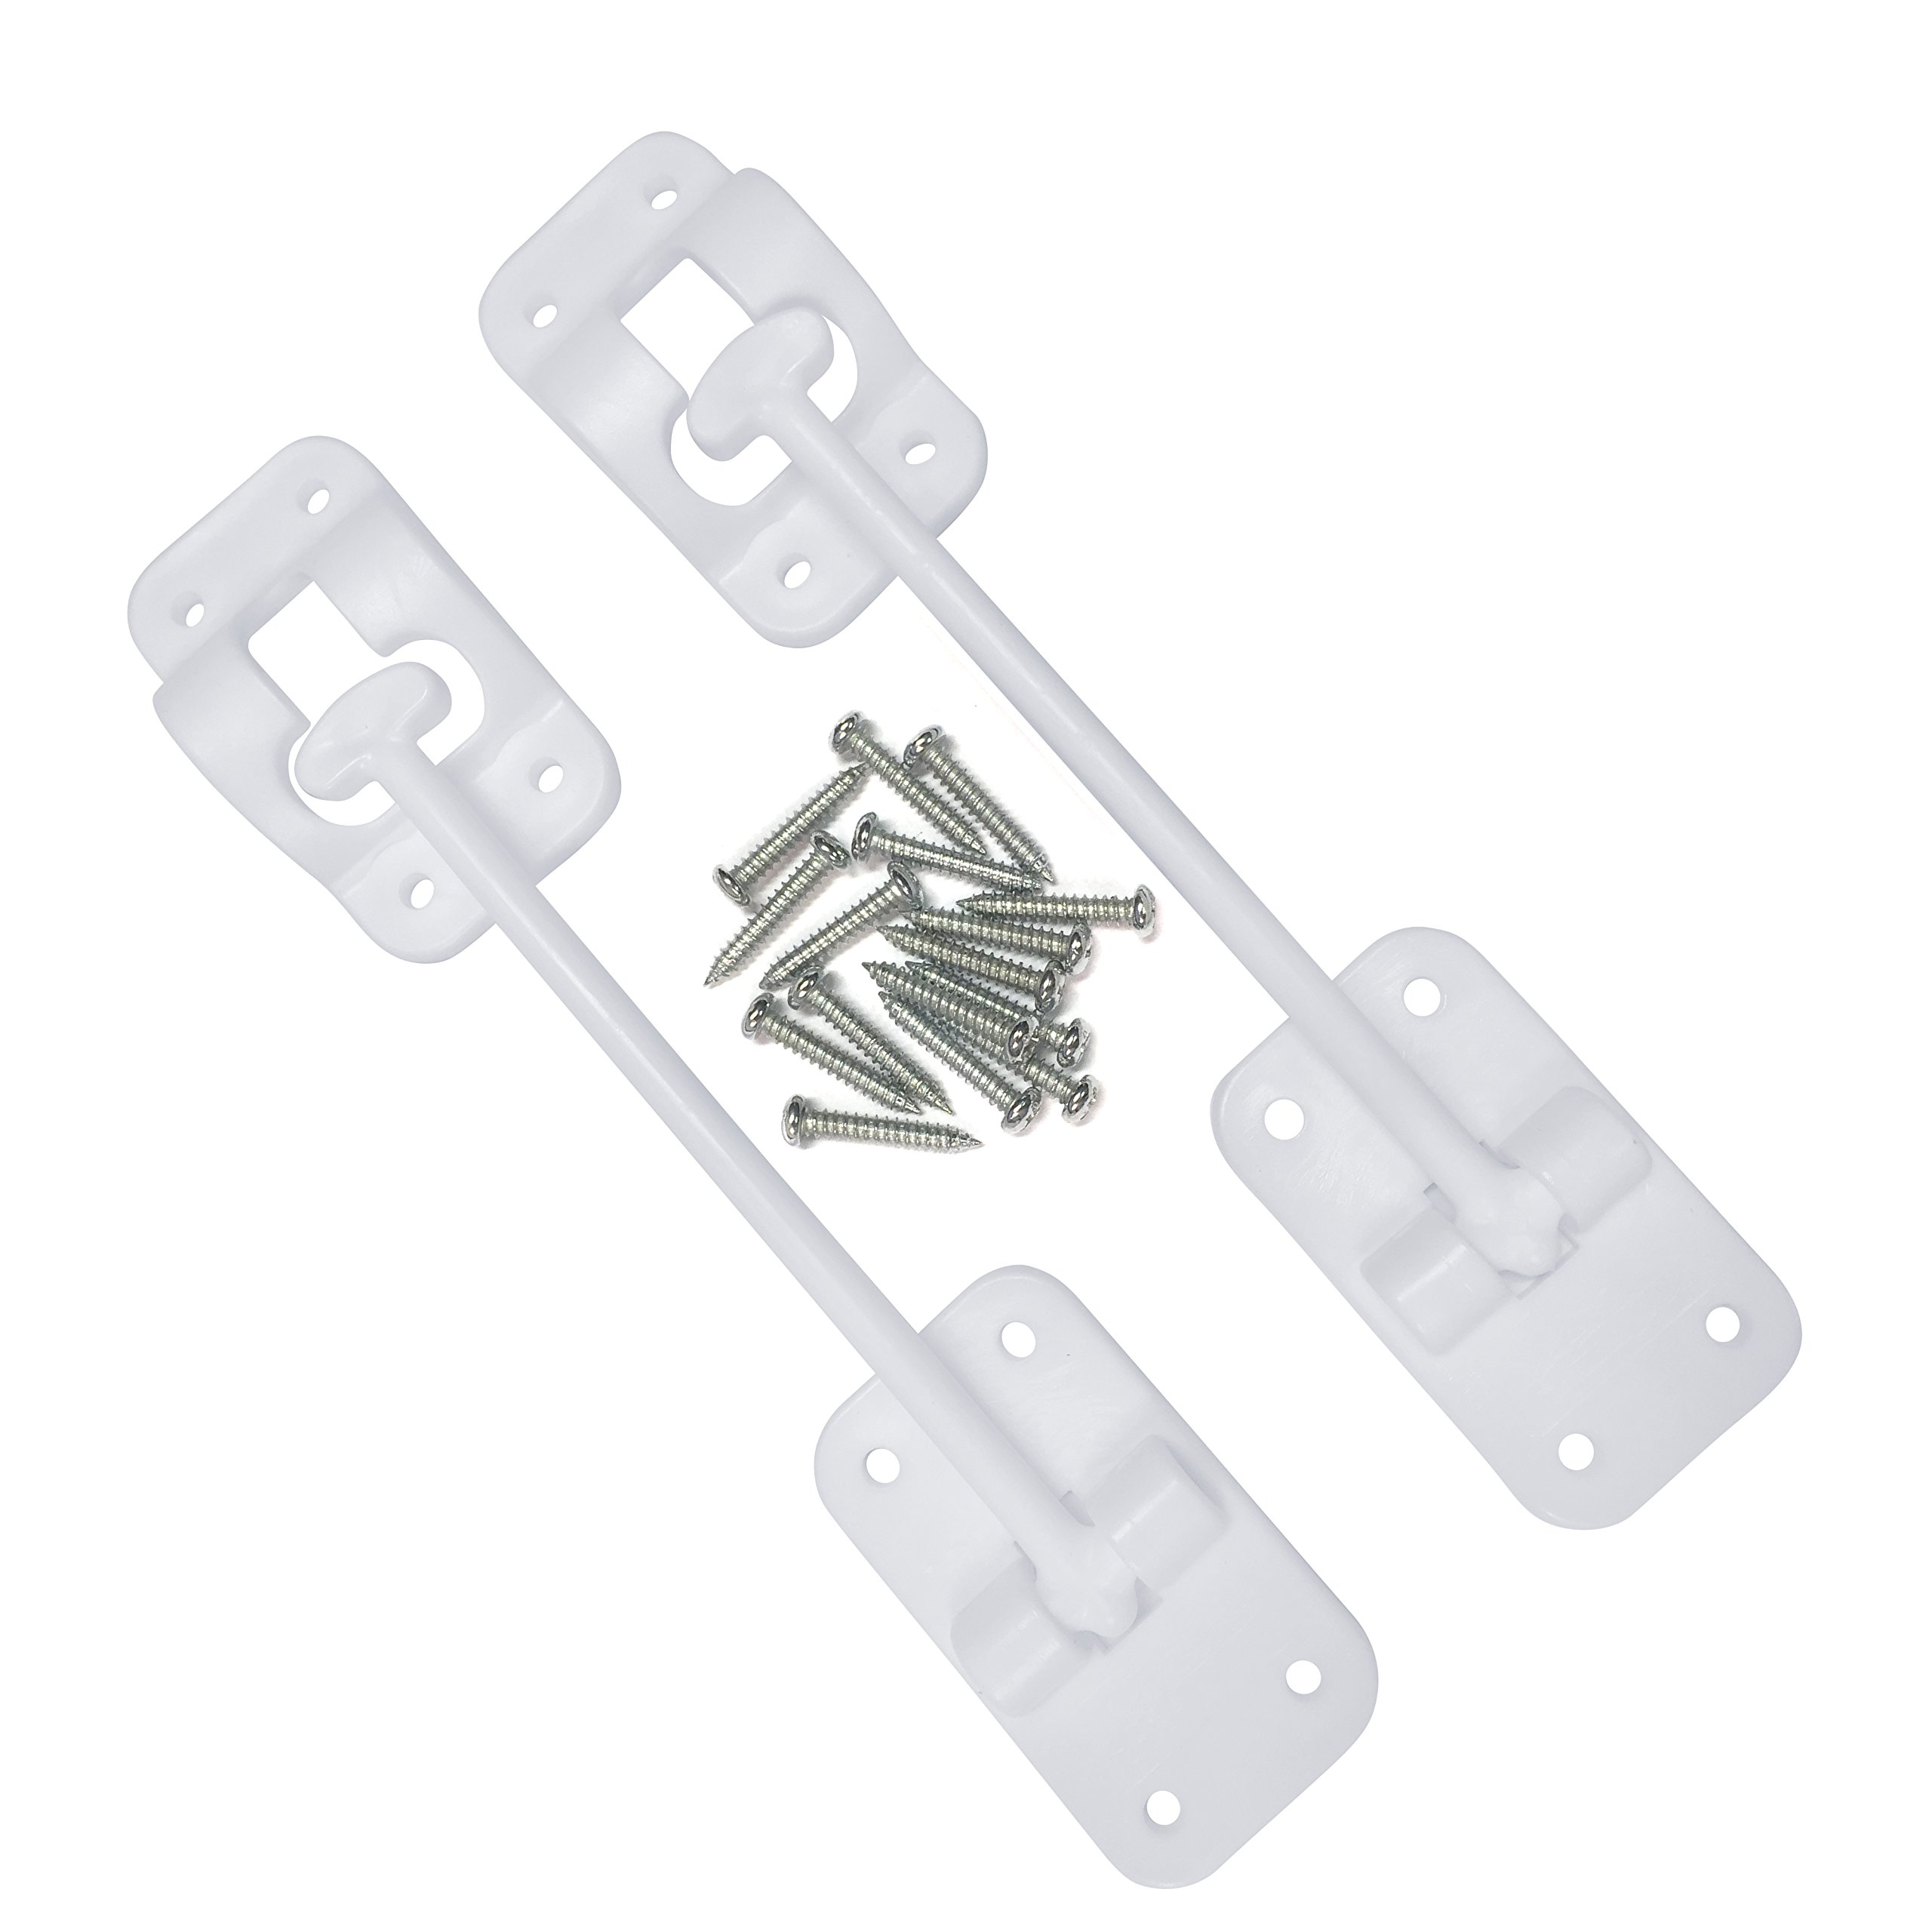 """Camp'N T-Style 6"""" Door Latch-Holder-Catch with Hardware for RV, Trailer, Camper, Motor Home, Cargo Trailer - OEM Replacement (White 2-Piece)"""